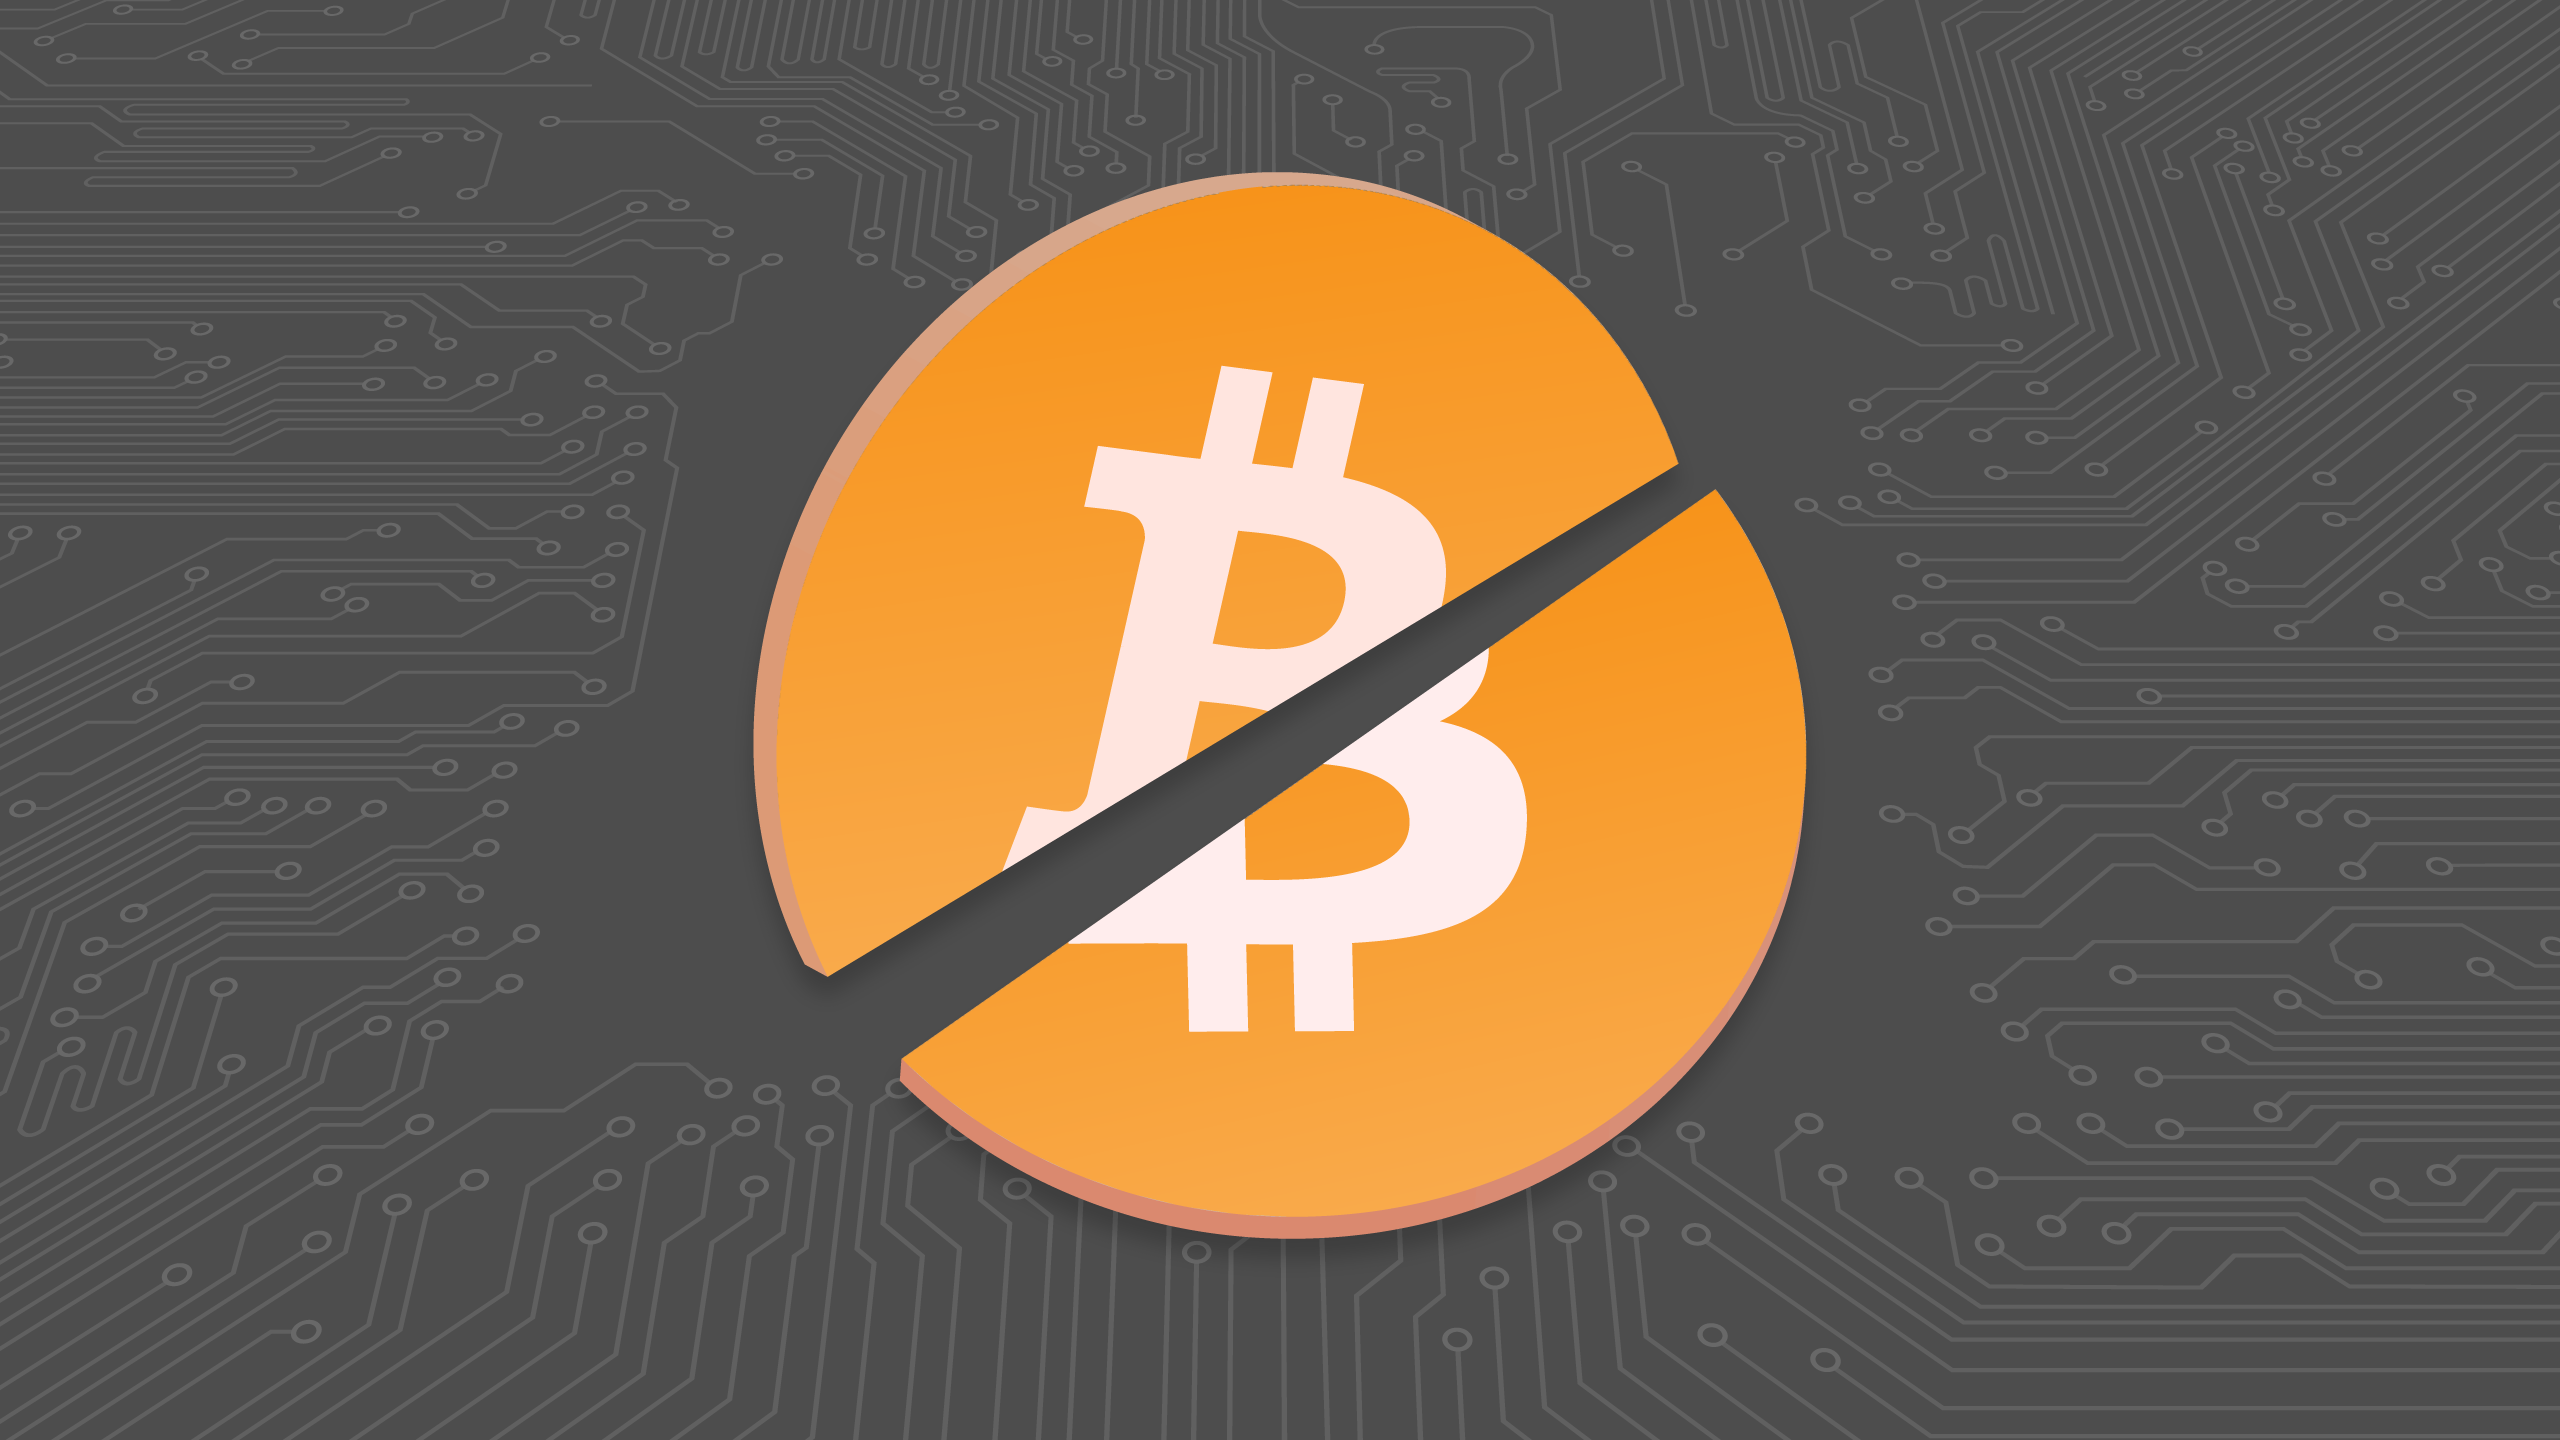 Bitcoin price drops as cryptocurrency exchange Bithumb is hacked